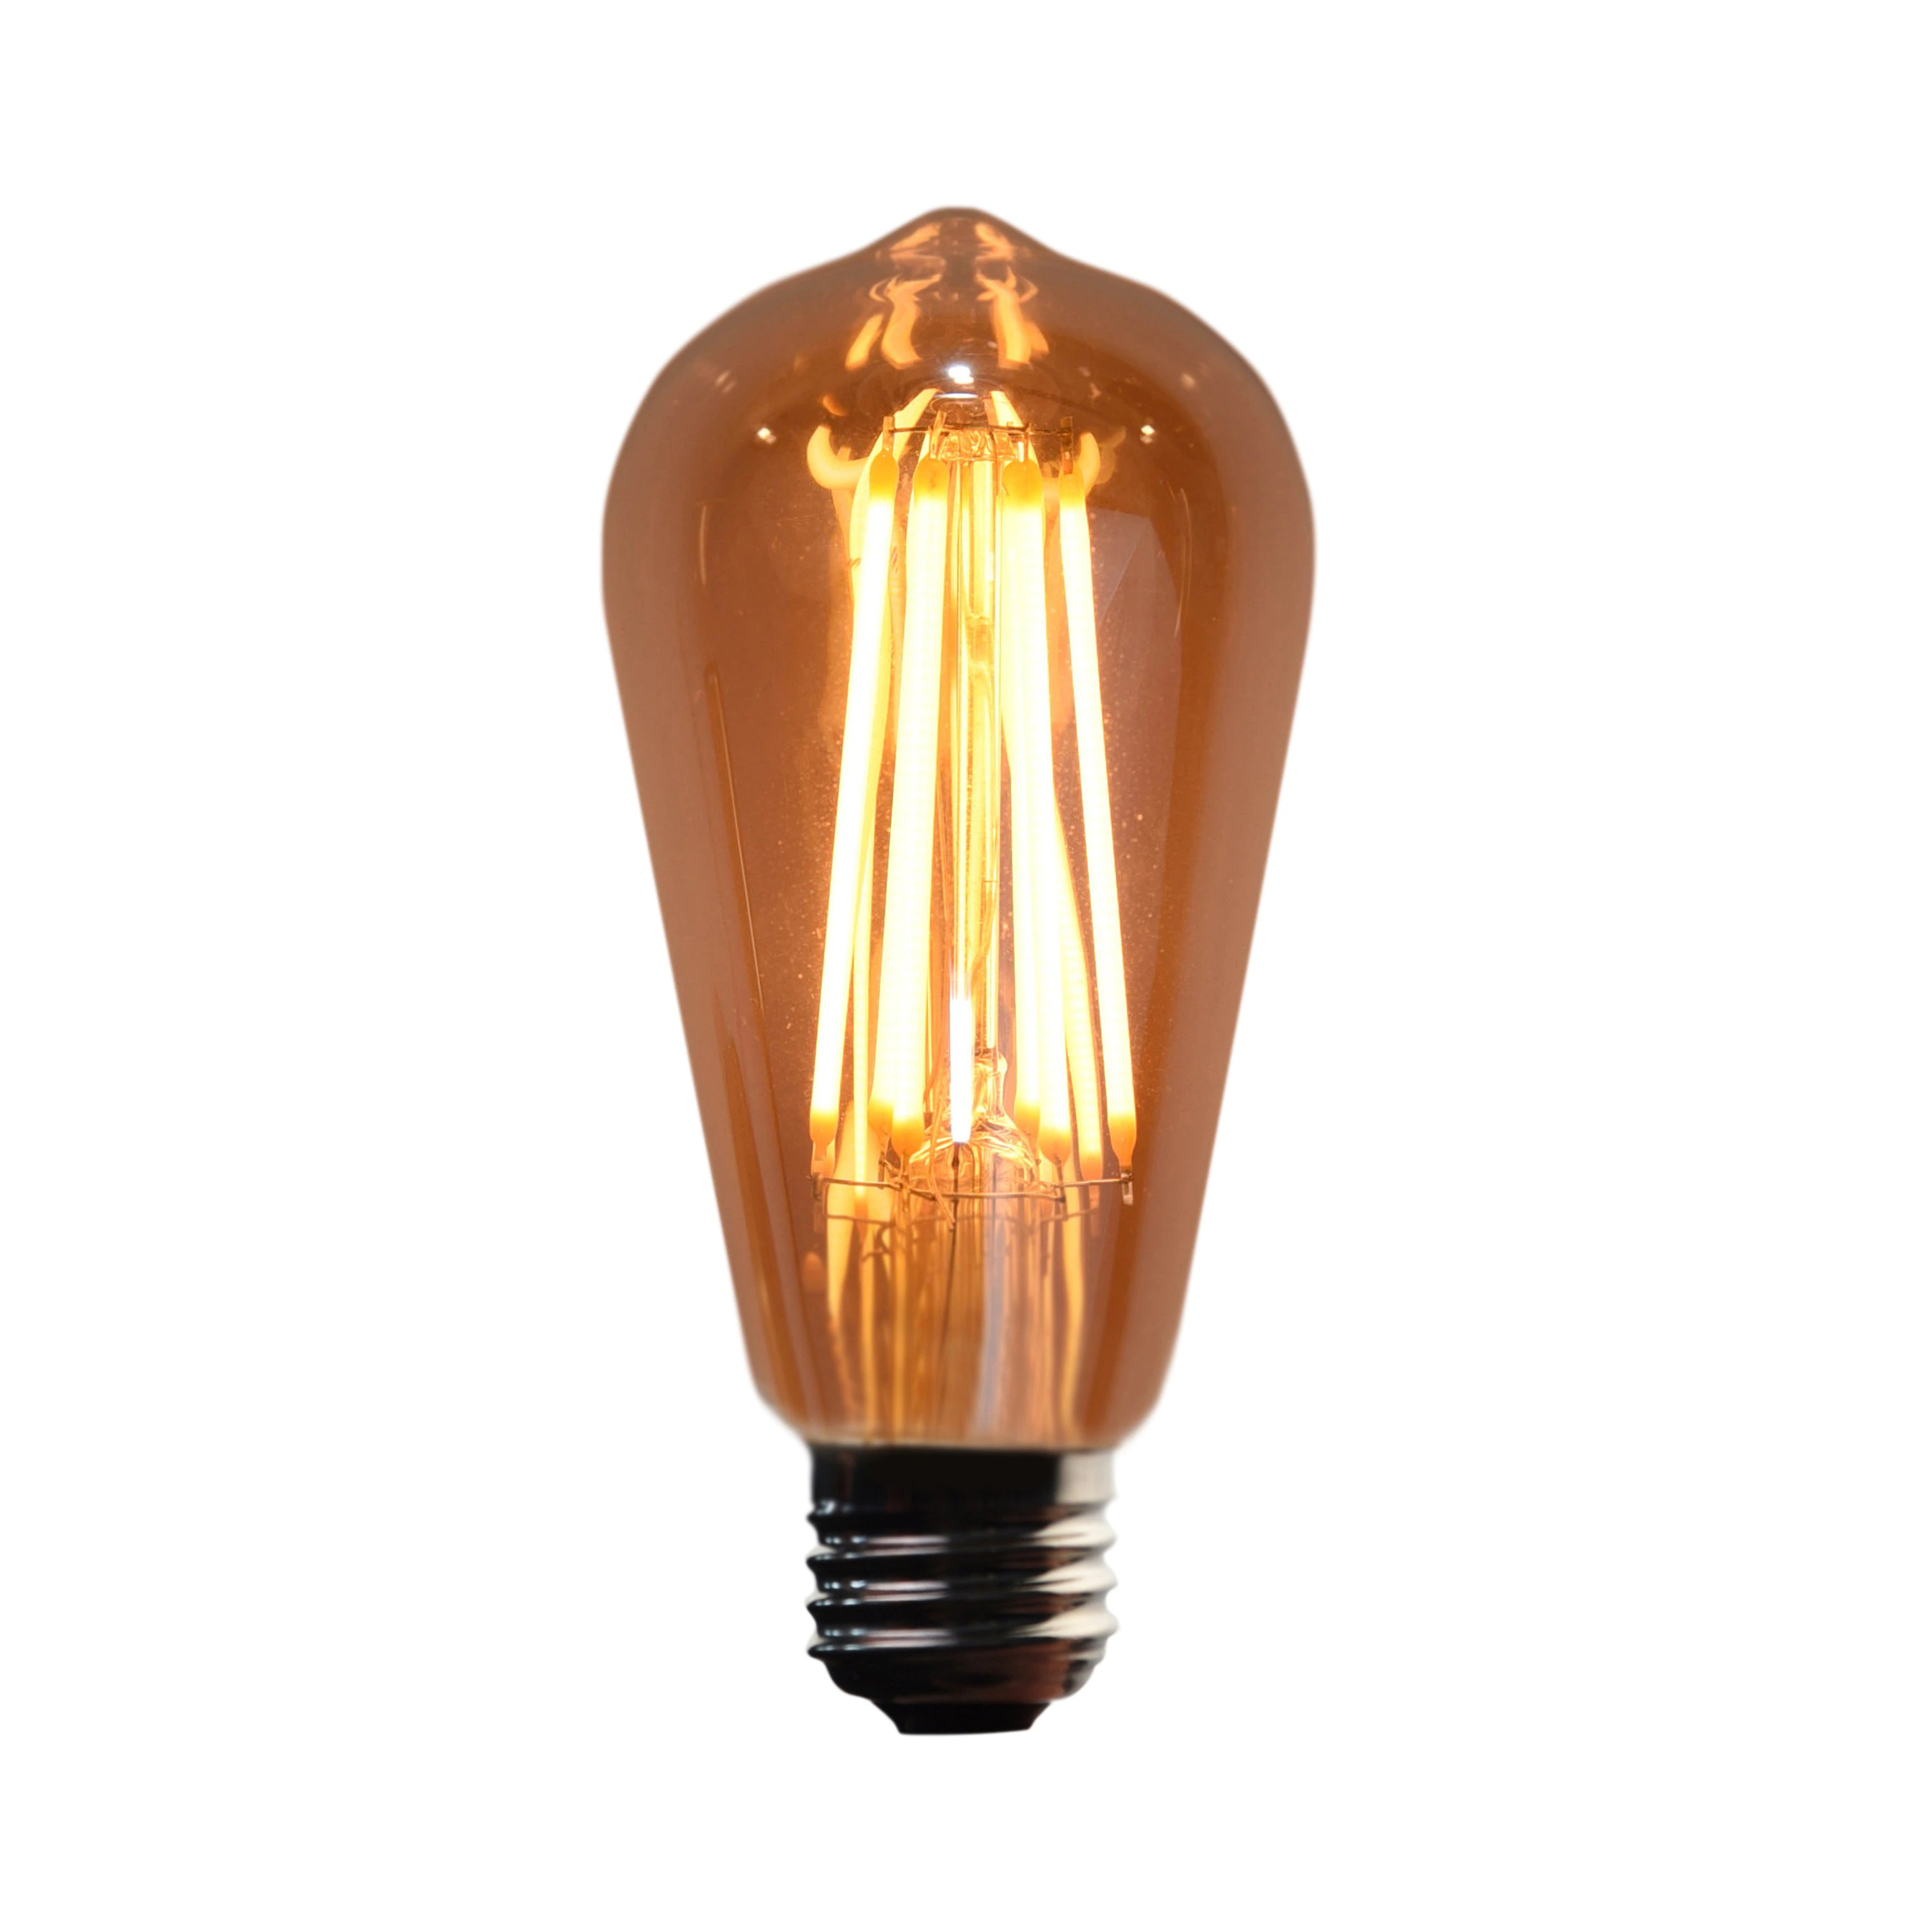 40 Watt In Lumen 4 5w Led Edison Bulb 400 Lumens 40 Watt Equivalent Fully Dimmable